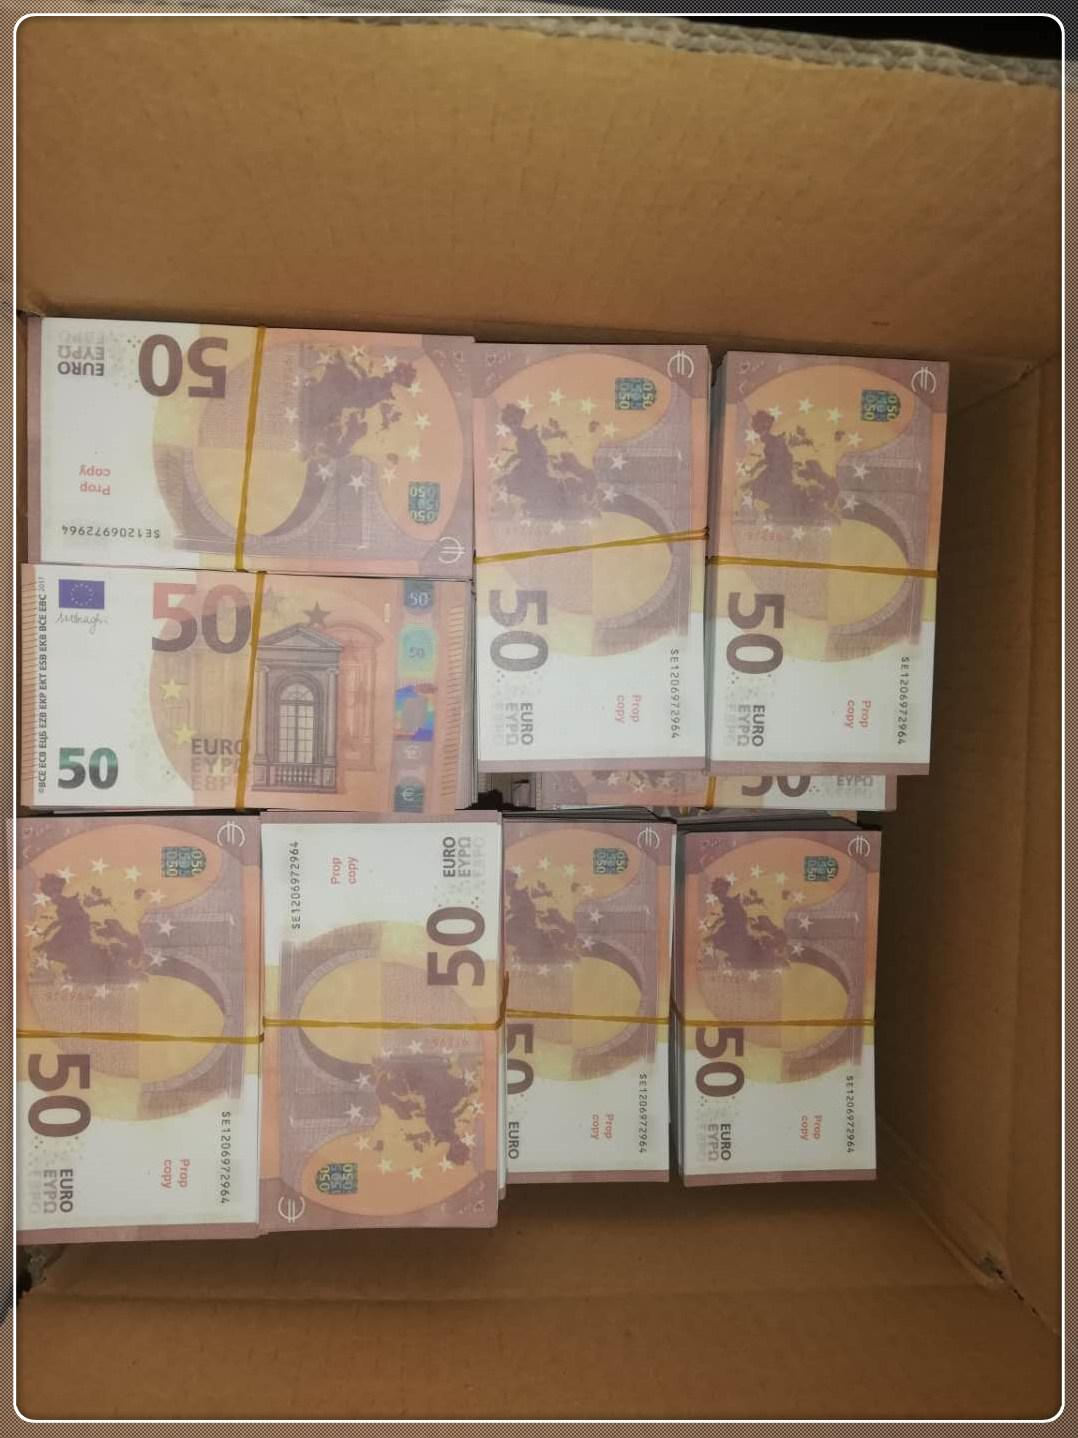 LE50-13 PROP 50 EURO COMPLET CONP Banknote Party Toy Bar Stage Hot Shoping Copy Atmospherse MV UUXOH COMPLET IJRVS